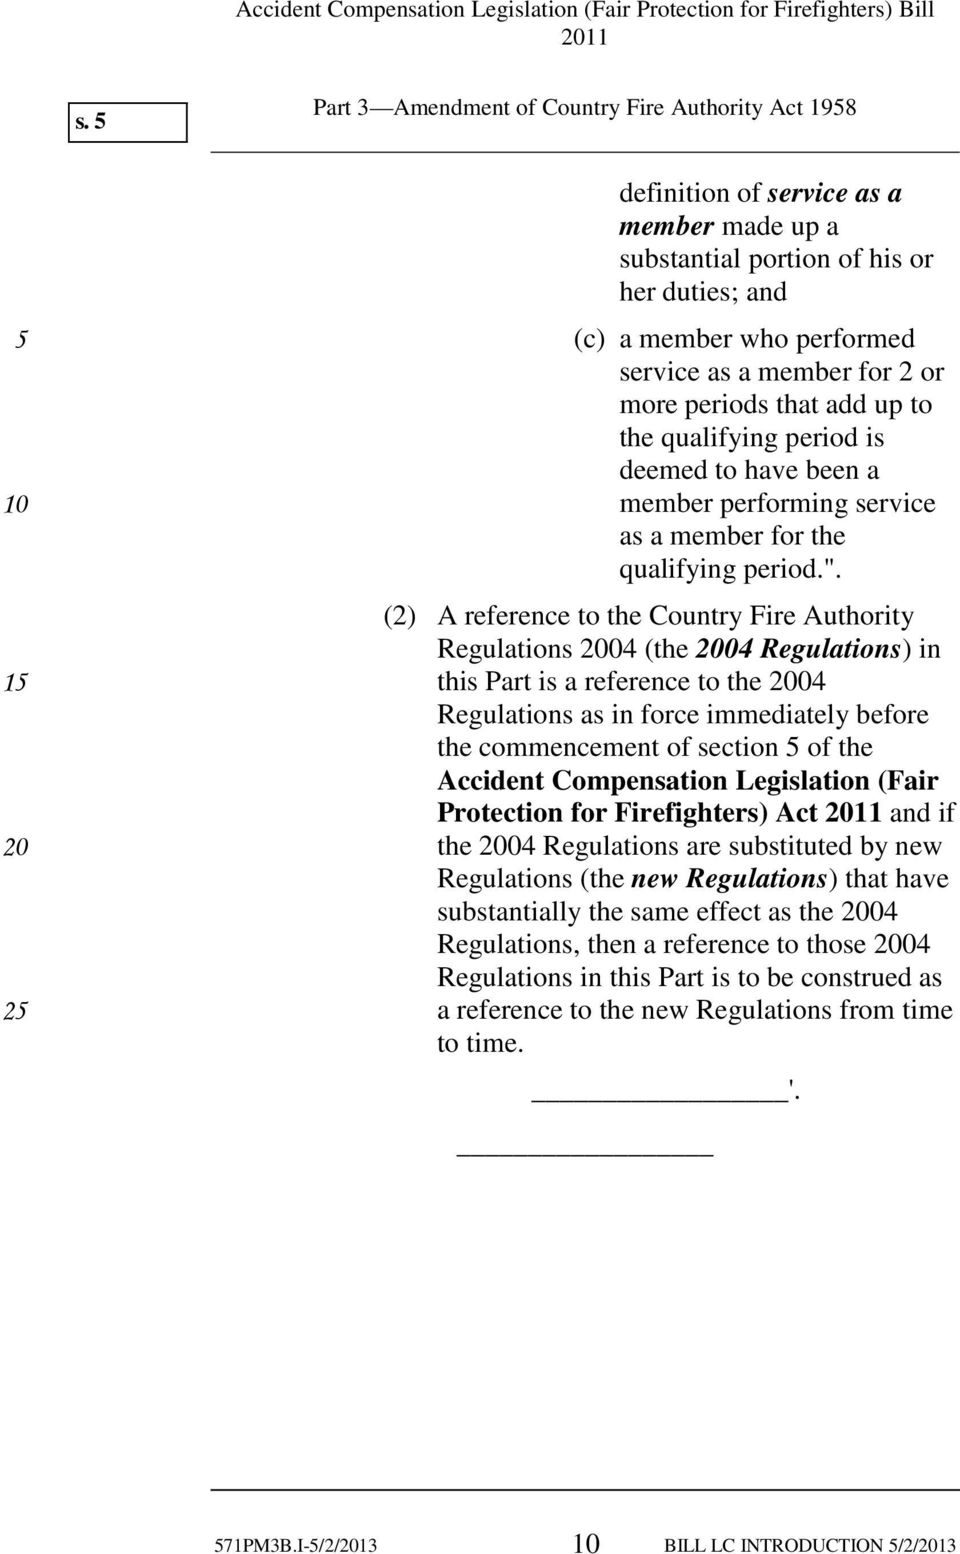 (2) A reference to the Country Fire Authority Regulations 2004 (the 2004 Regulations) in this Part is a reference to the 2004 Regulations as in force immediately before the commencement of section of